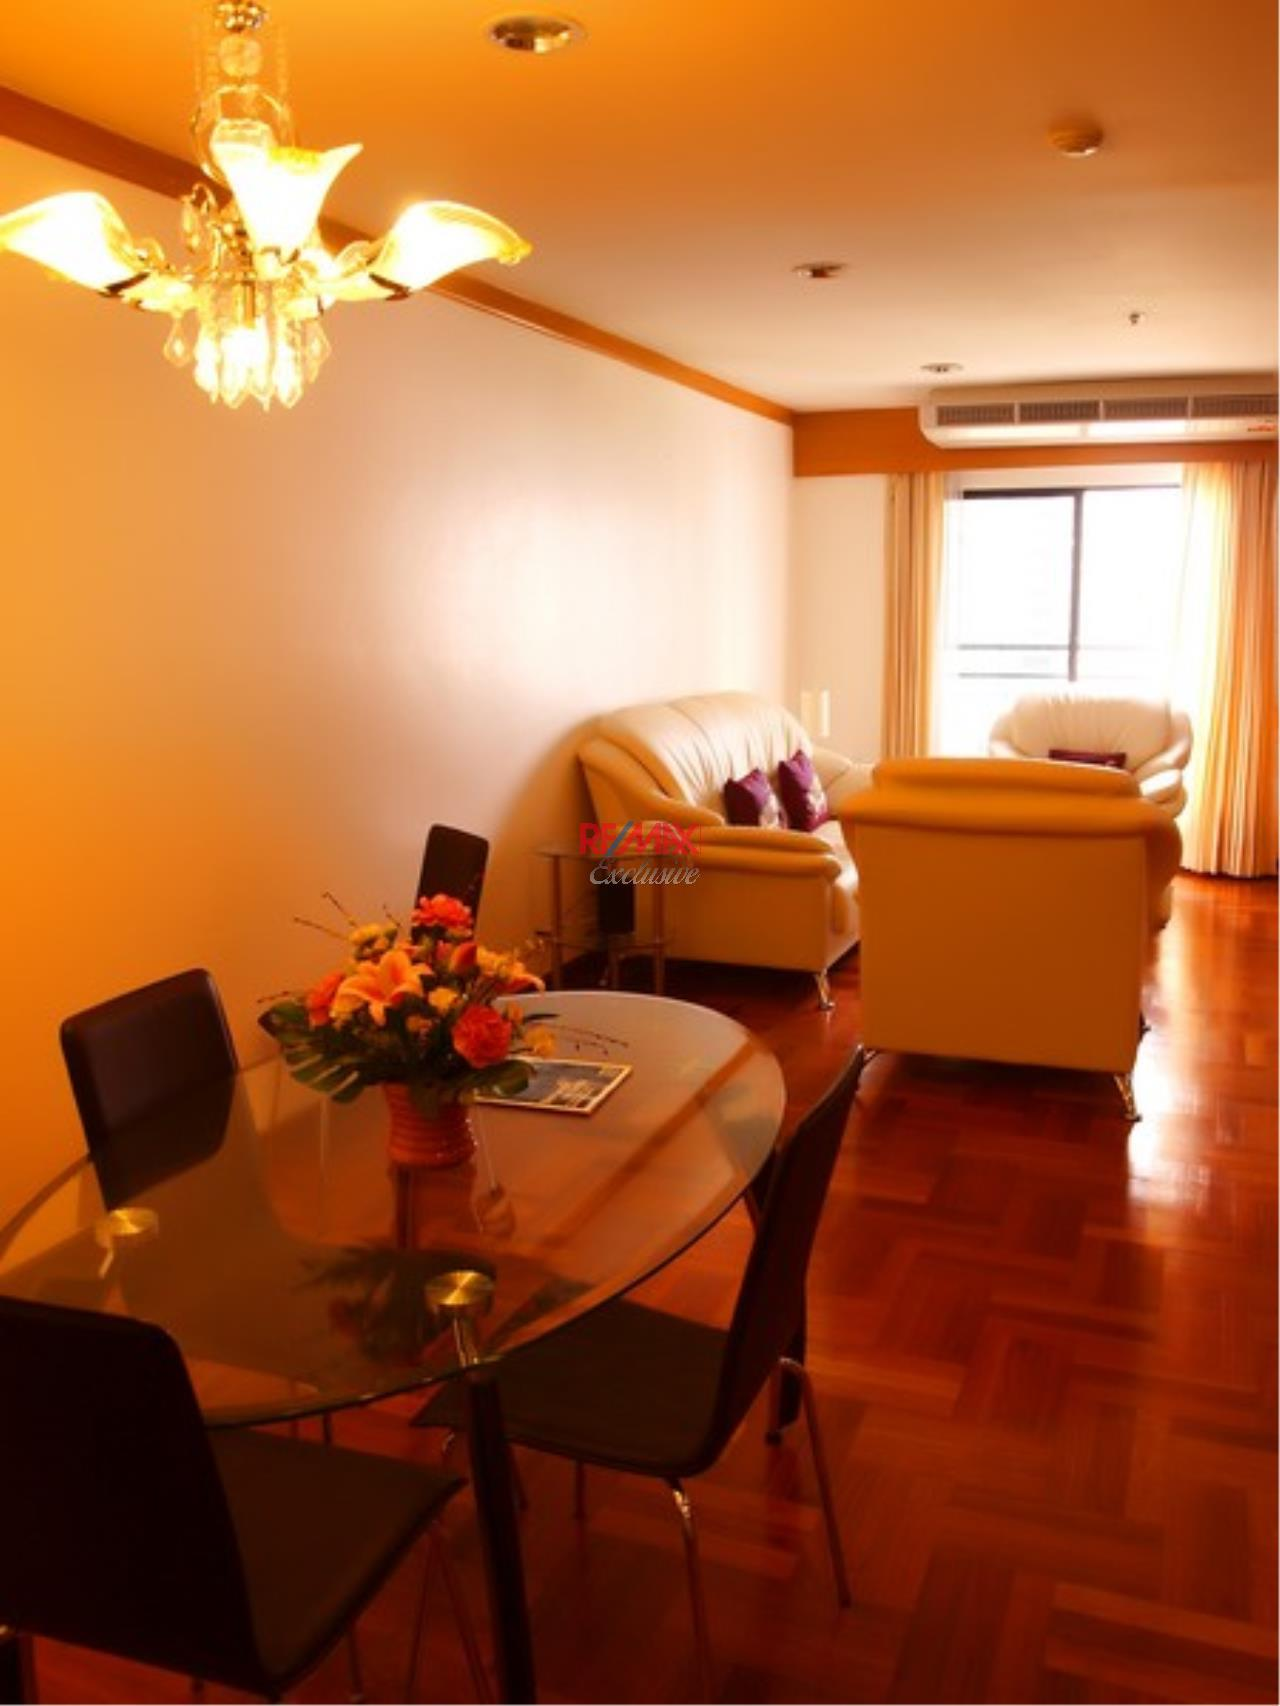 RE/MAX Exclusive Agency's Liberty Park II 3 Bedrooms, 2 Bathrooms 118 SQM For Sale With Tenant!! 2